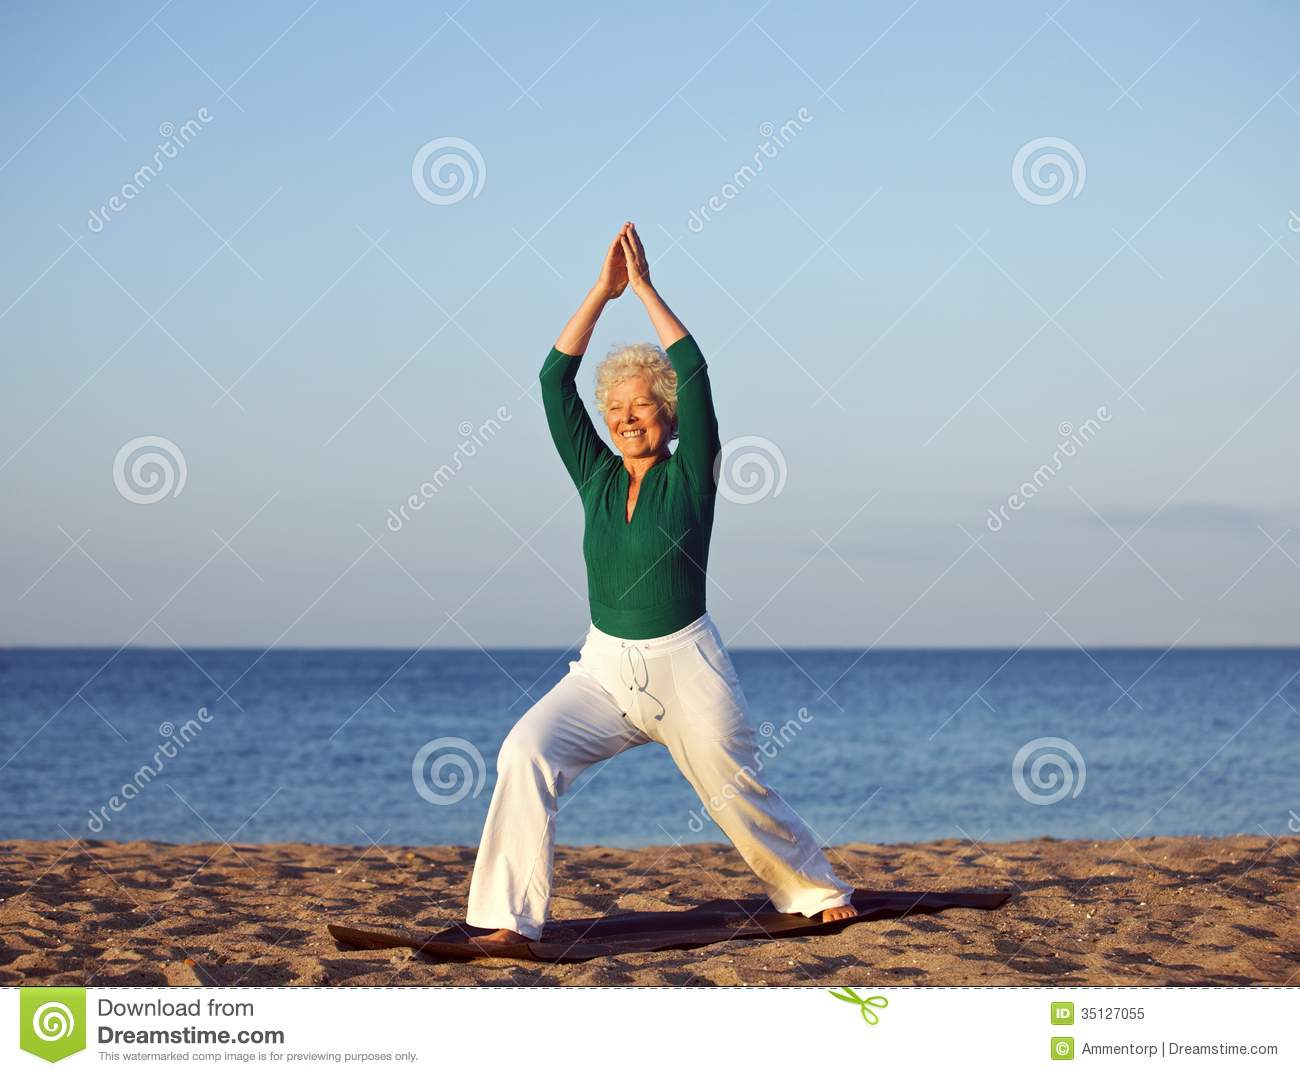 Senior Woman Stretching Against Beach Background Royalty